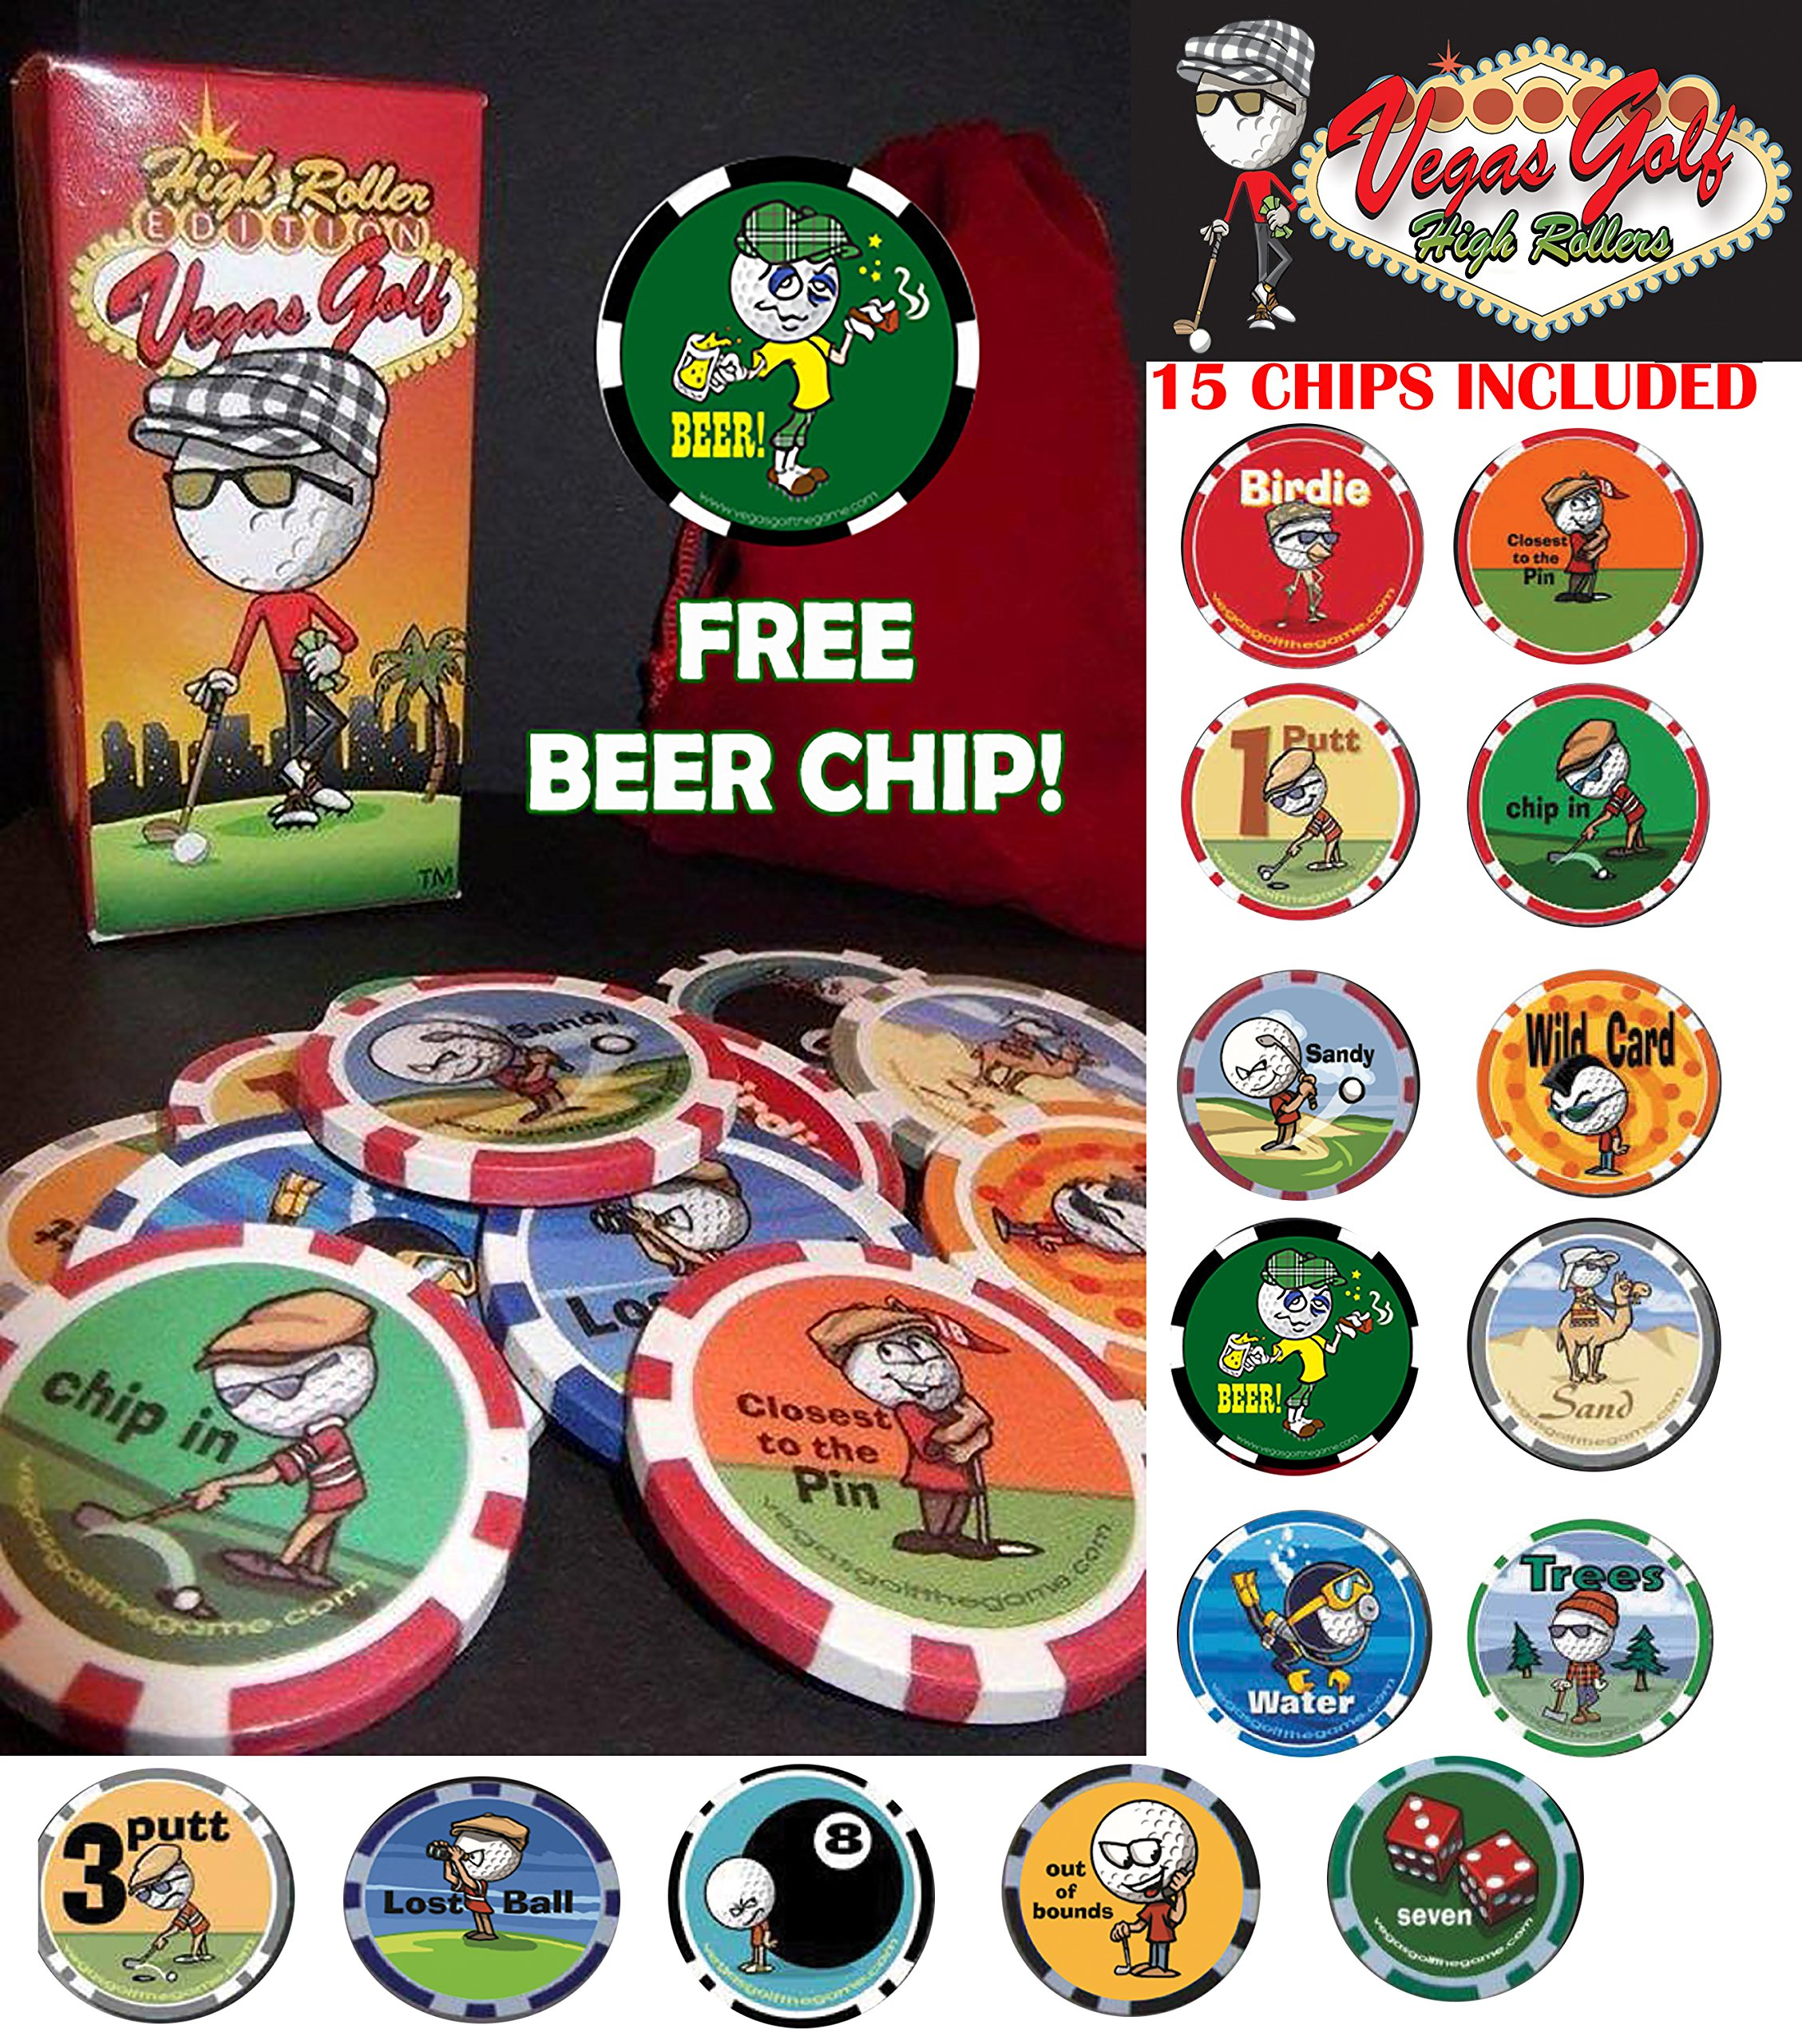 Vegas Golf High Roller Edition-NOW with 15-chips! Now Includes a FREE Beer Chip